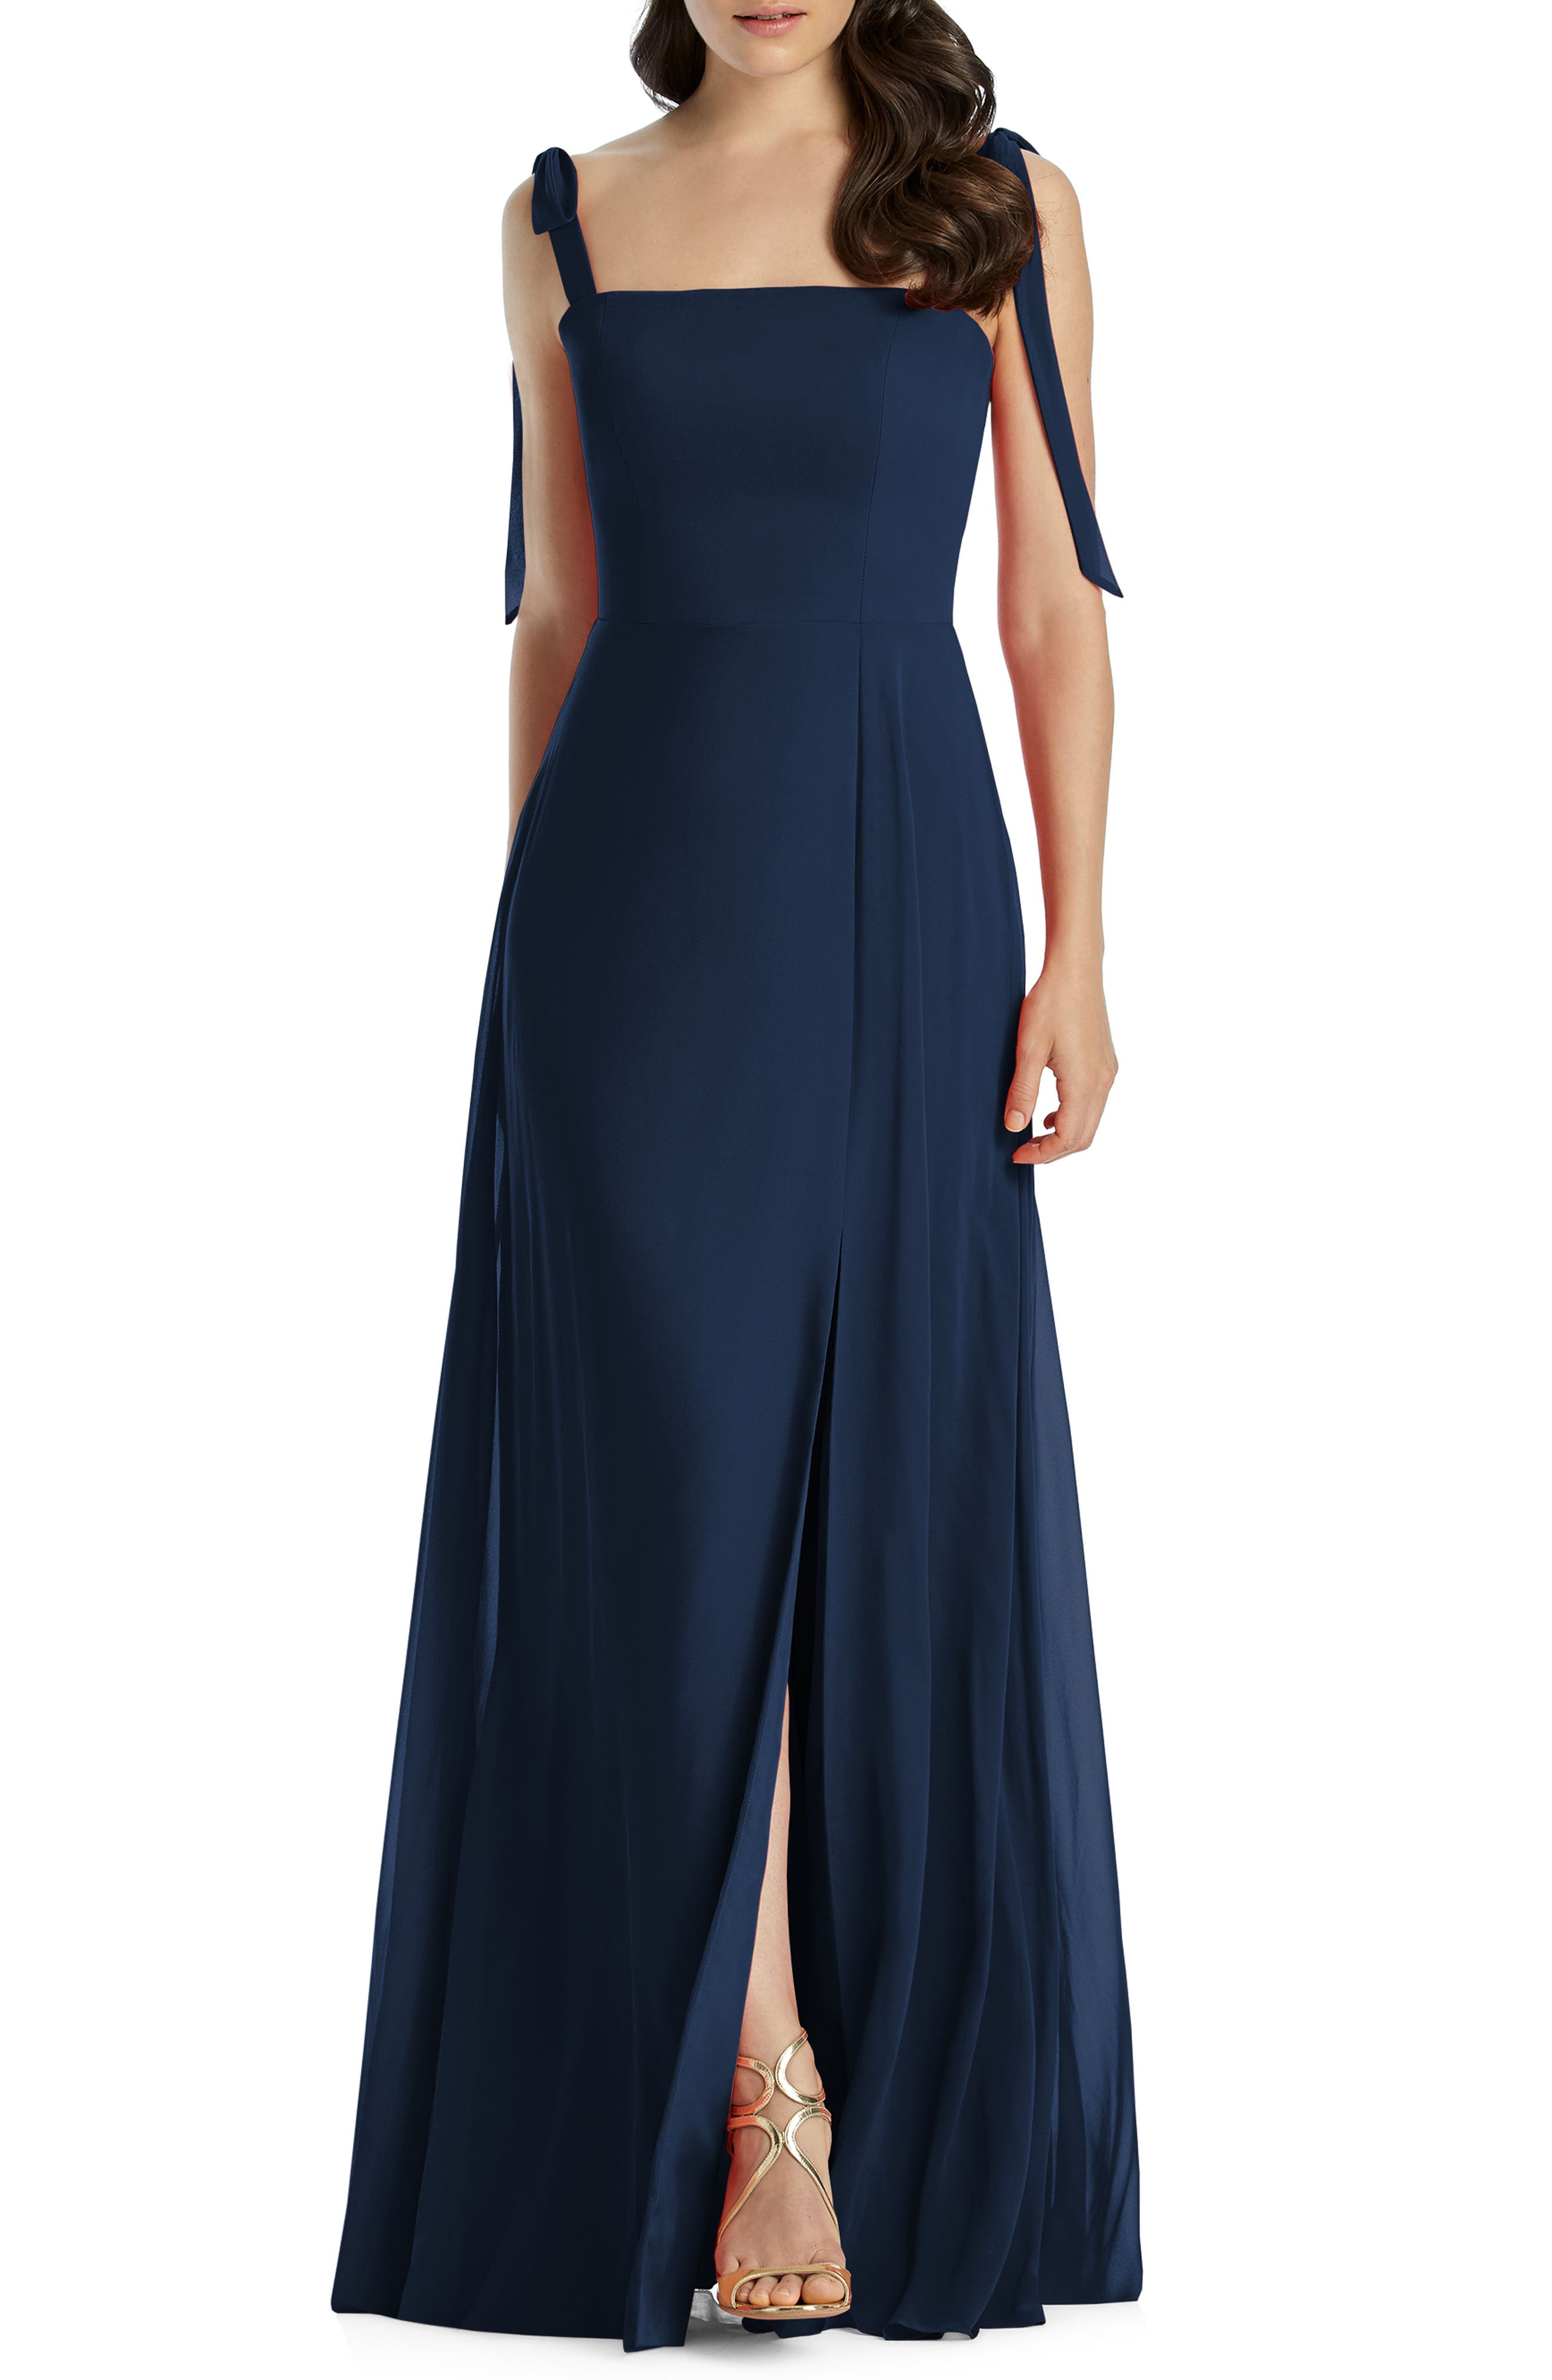 Dessy Collection Shoulder Tie Chiffon Evening Dress, 8 (similar to 1) - Blue